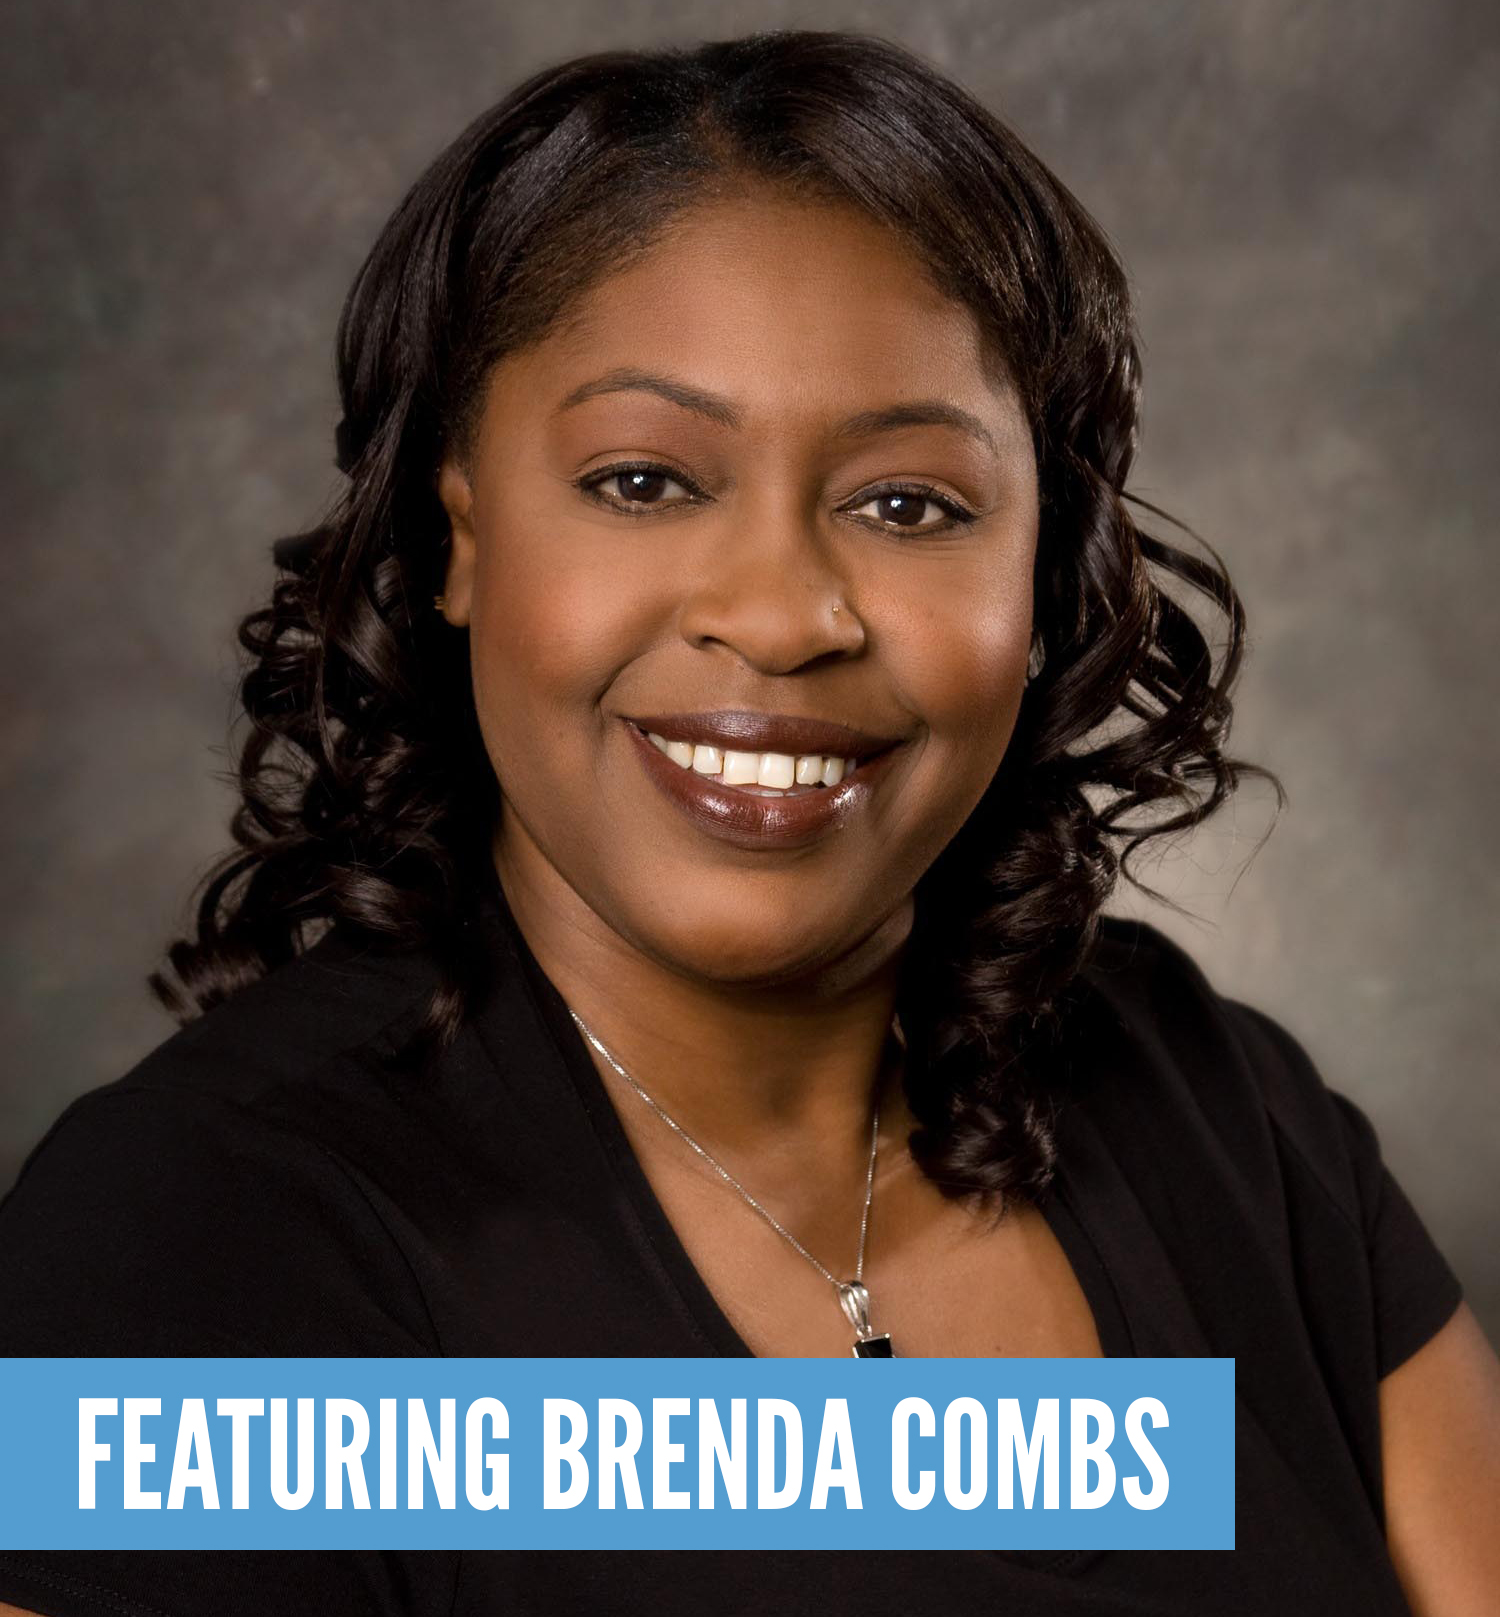 Featuring Brenda Combs